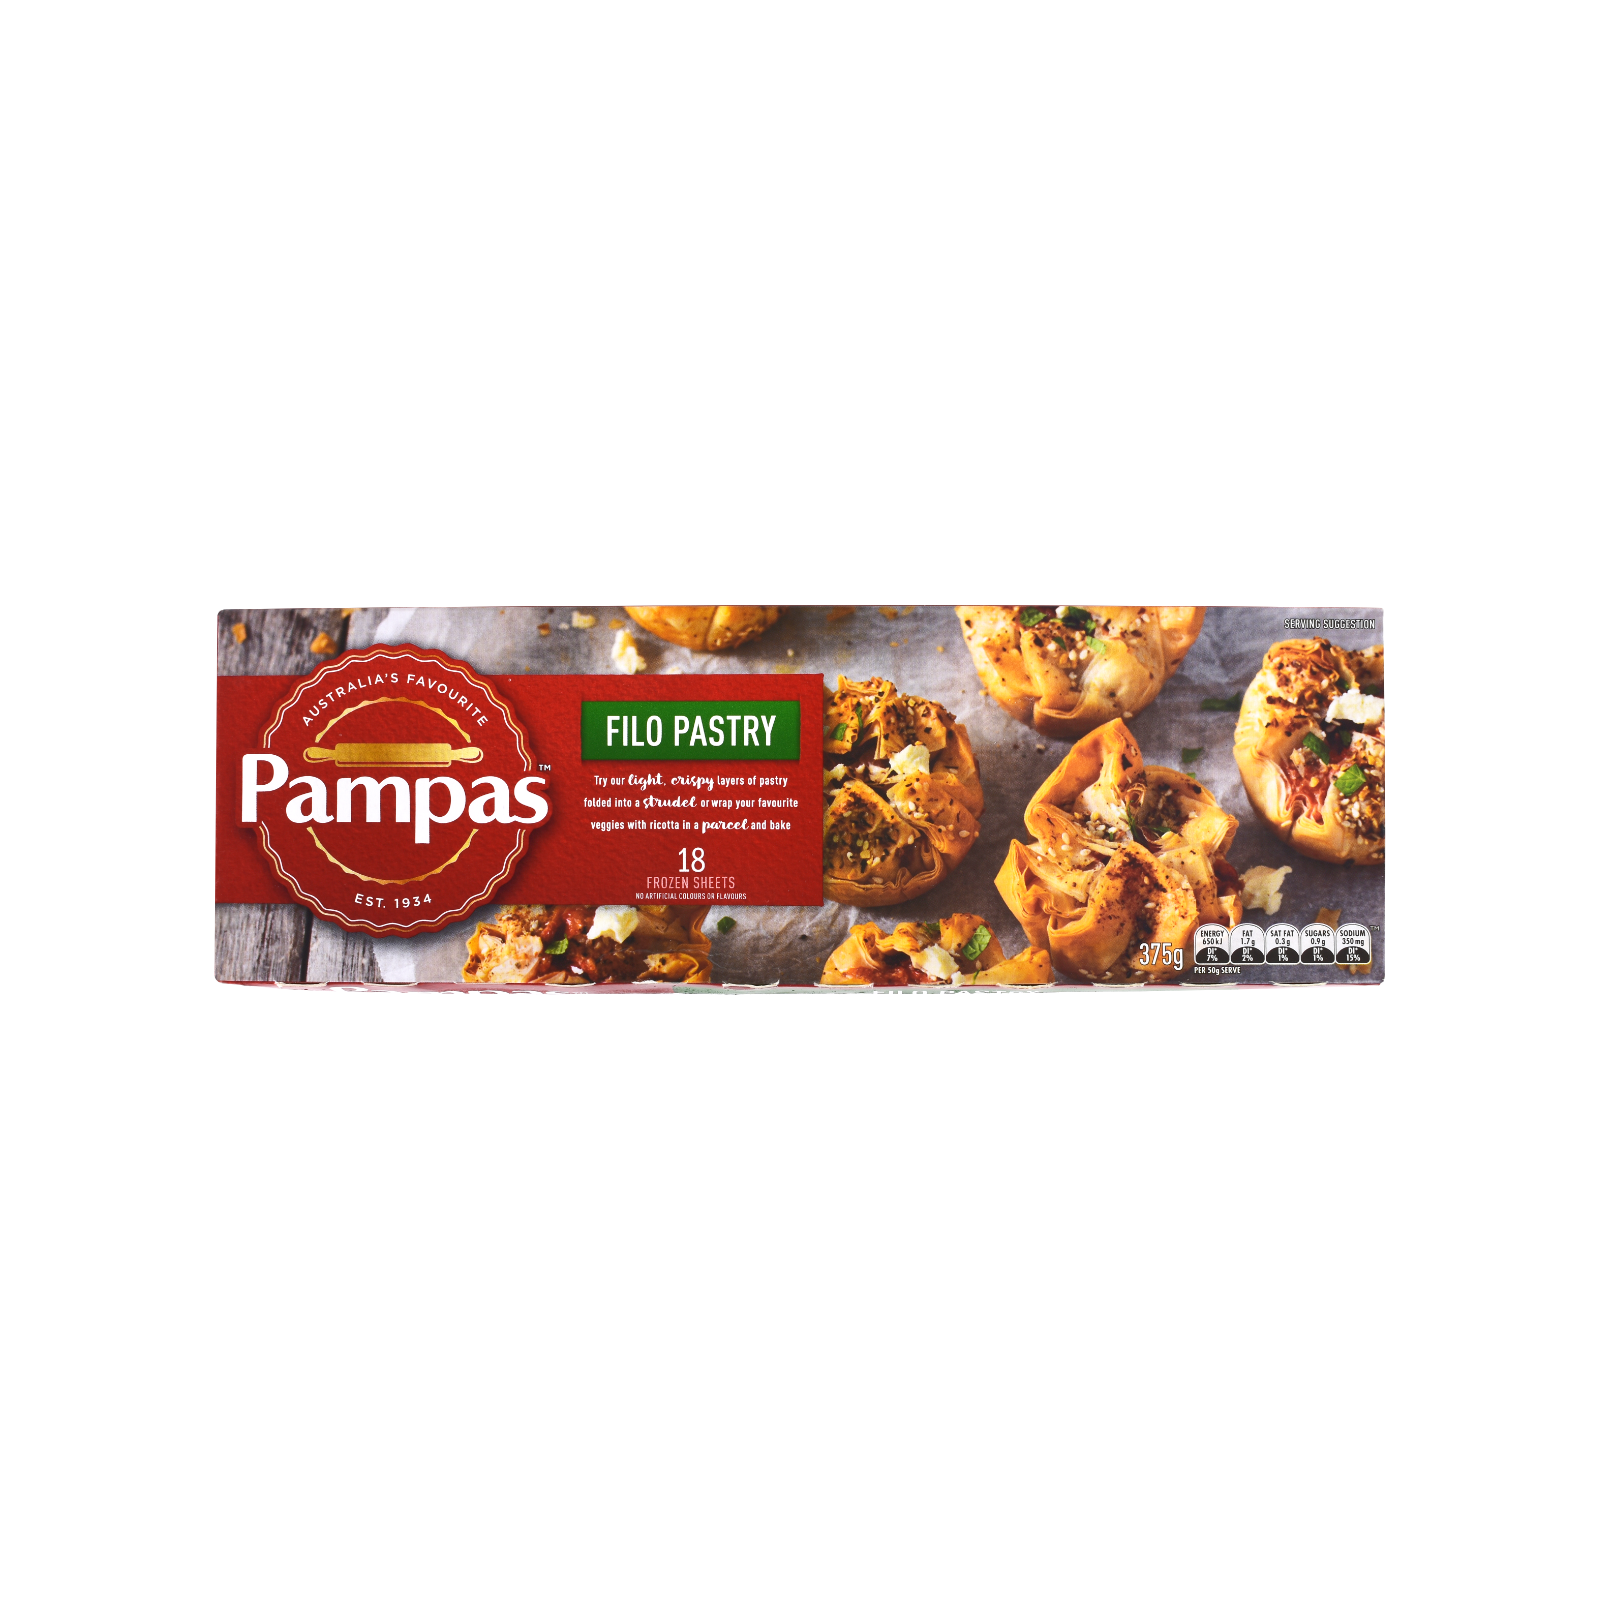 Pampas Filo Pastry 375g.png